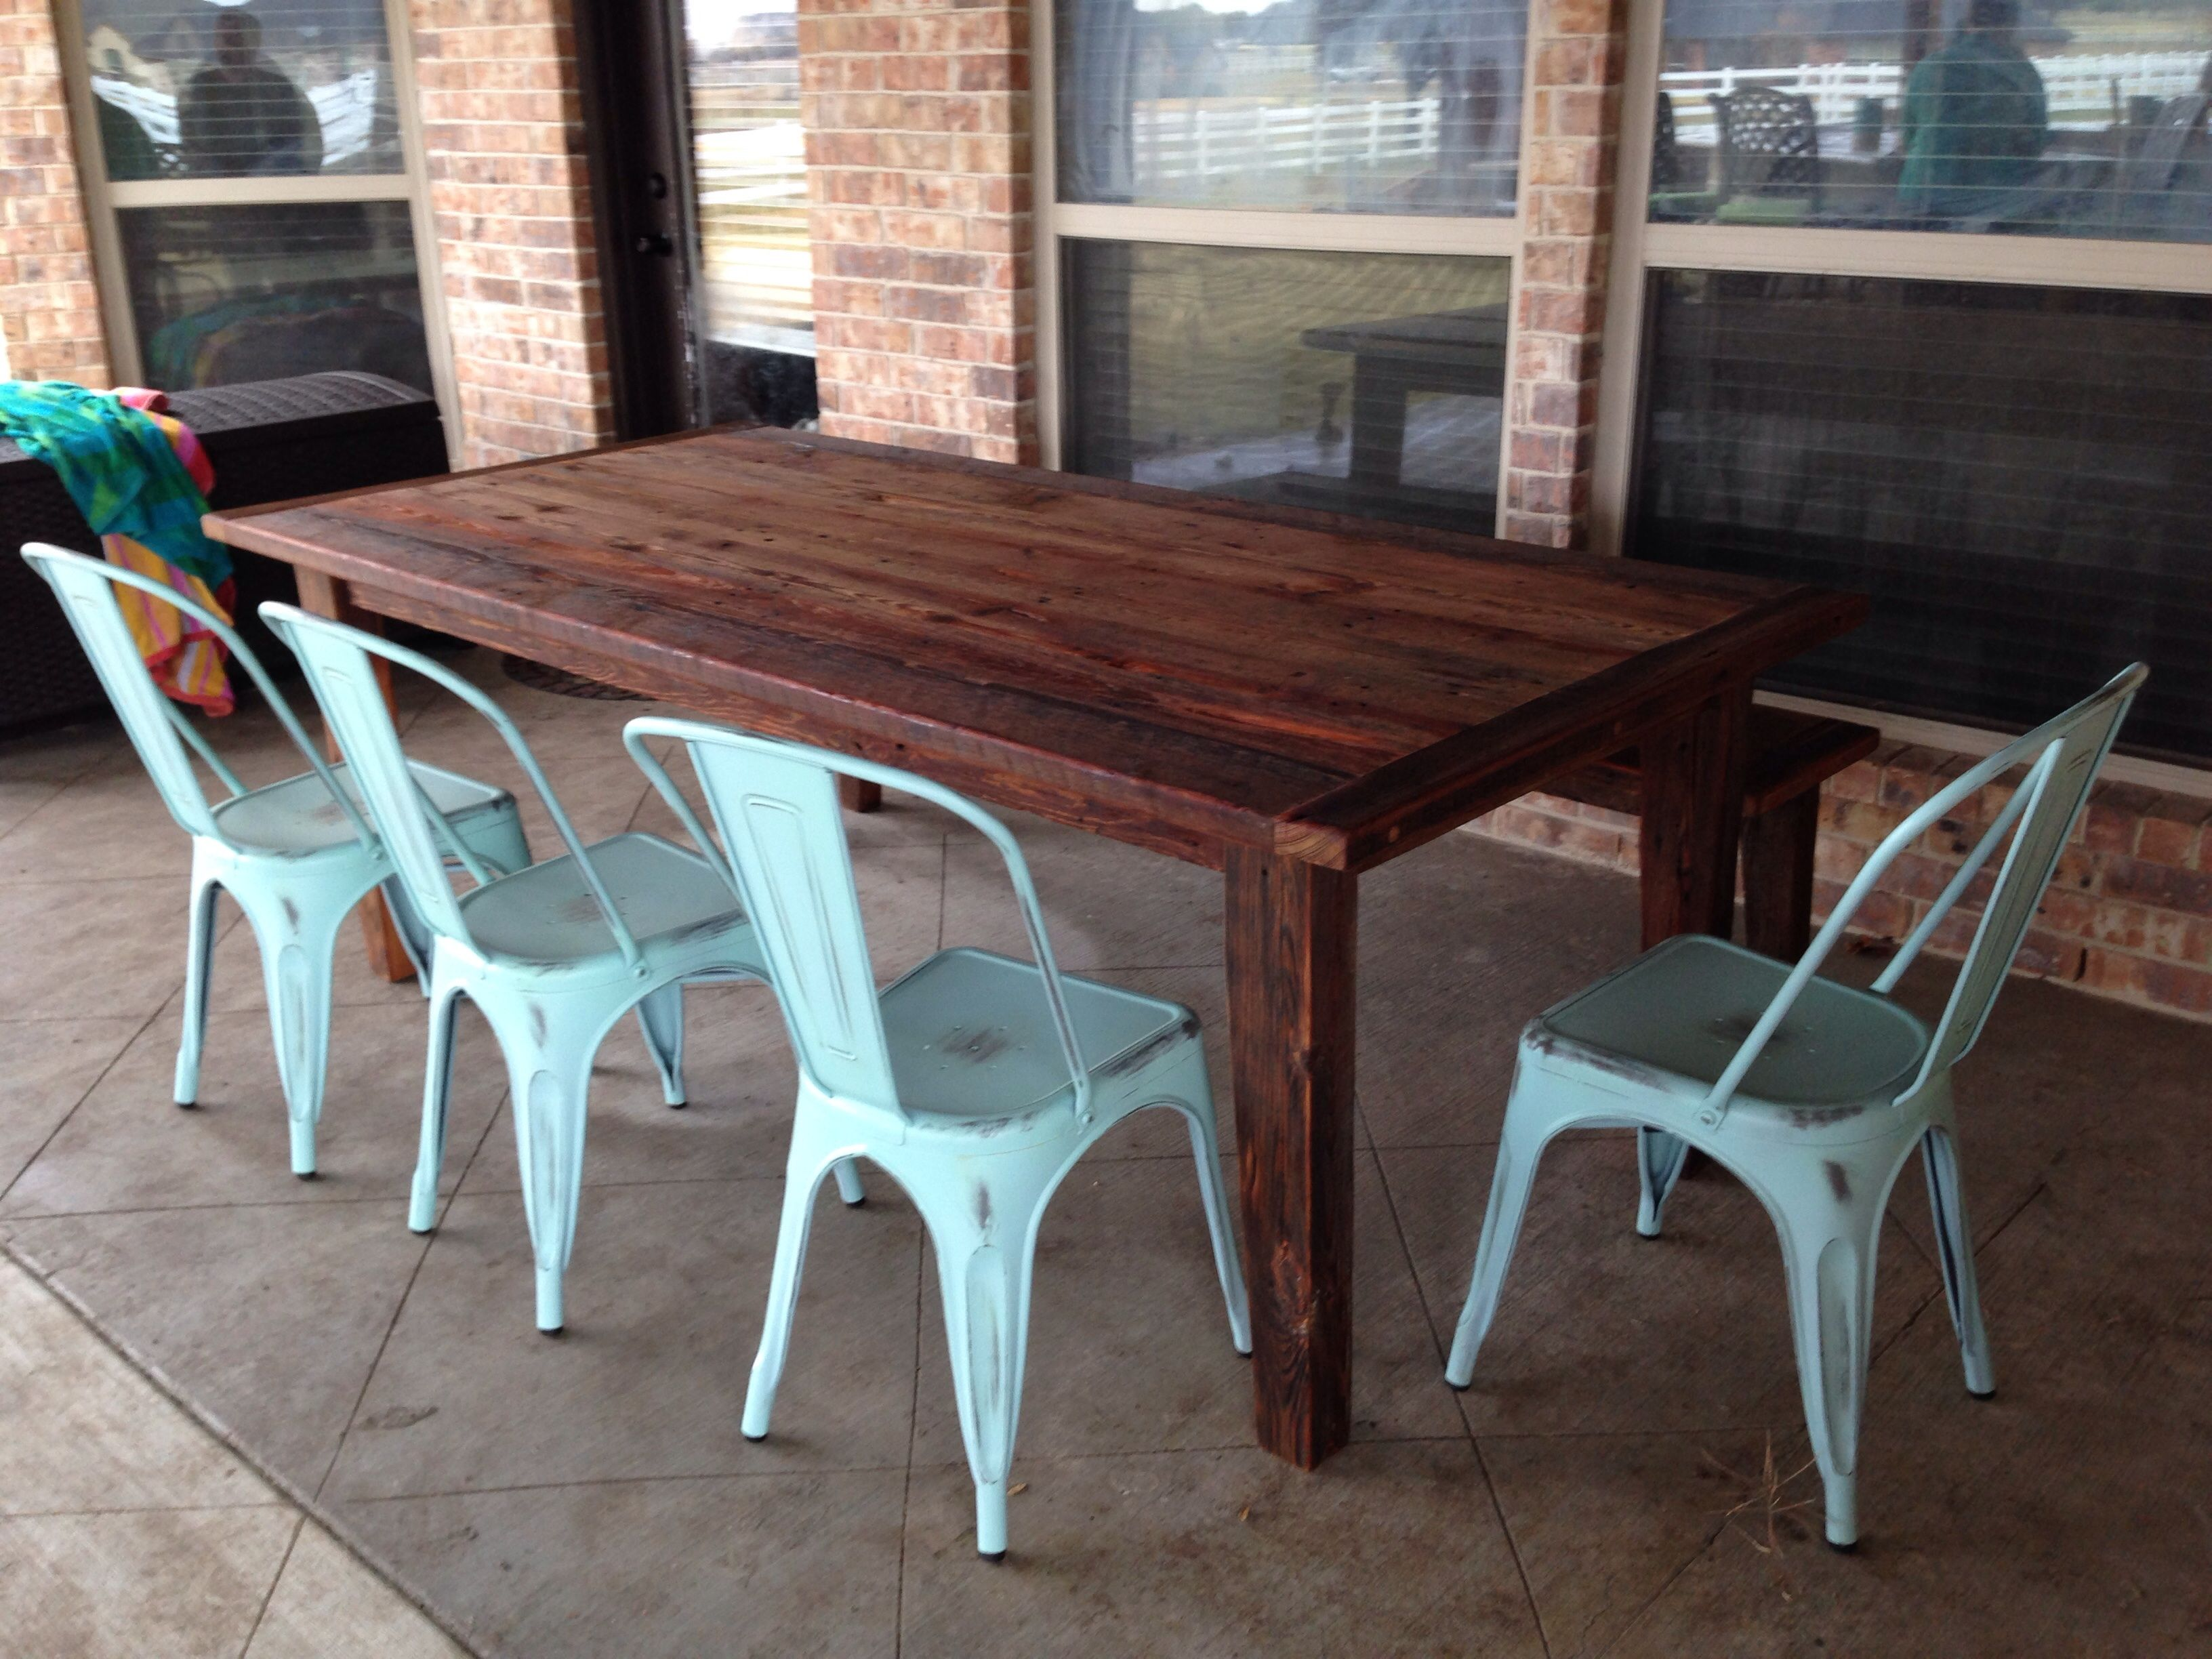 Reclaimed kitchen table  Outdoor dining table with teak oil finish made from reclaimed us